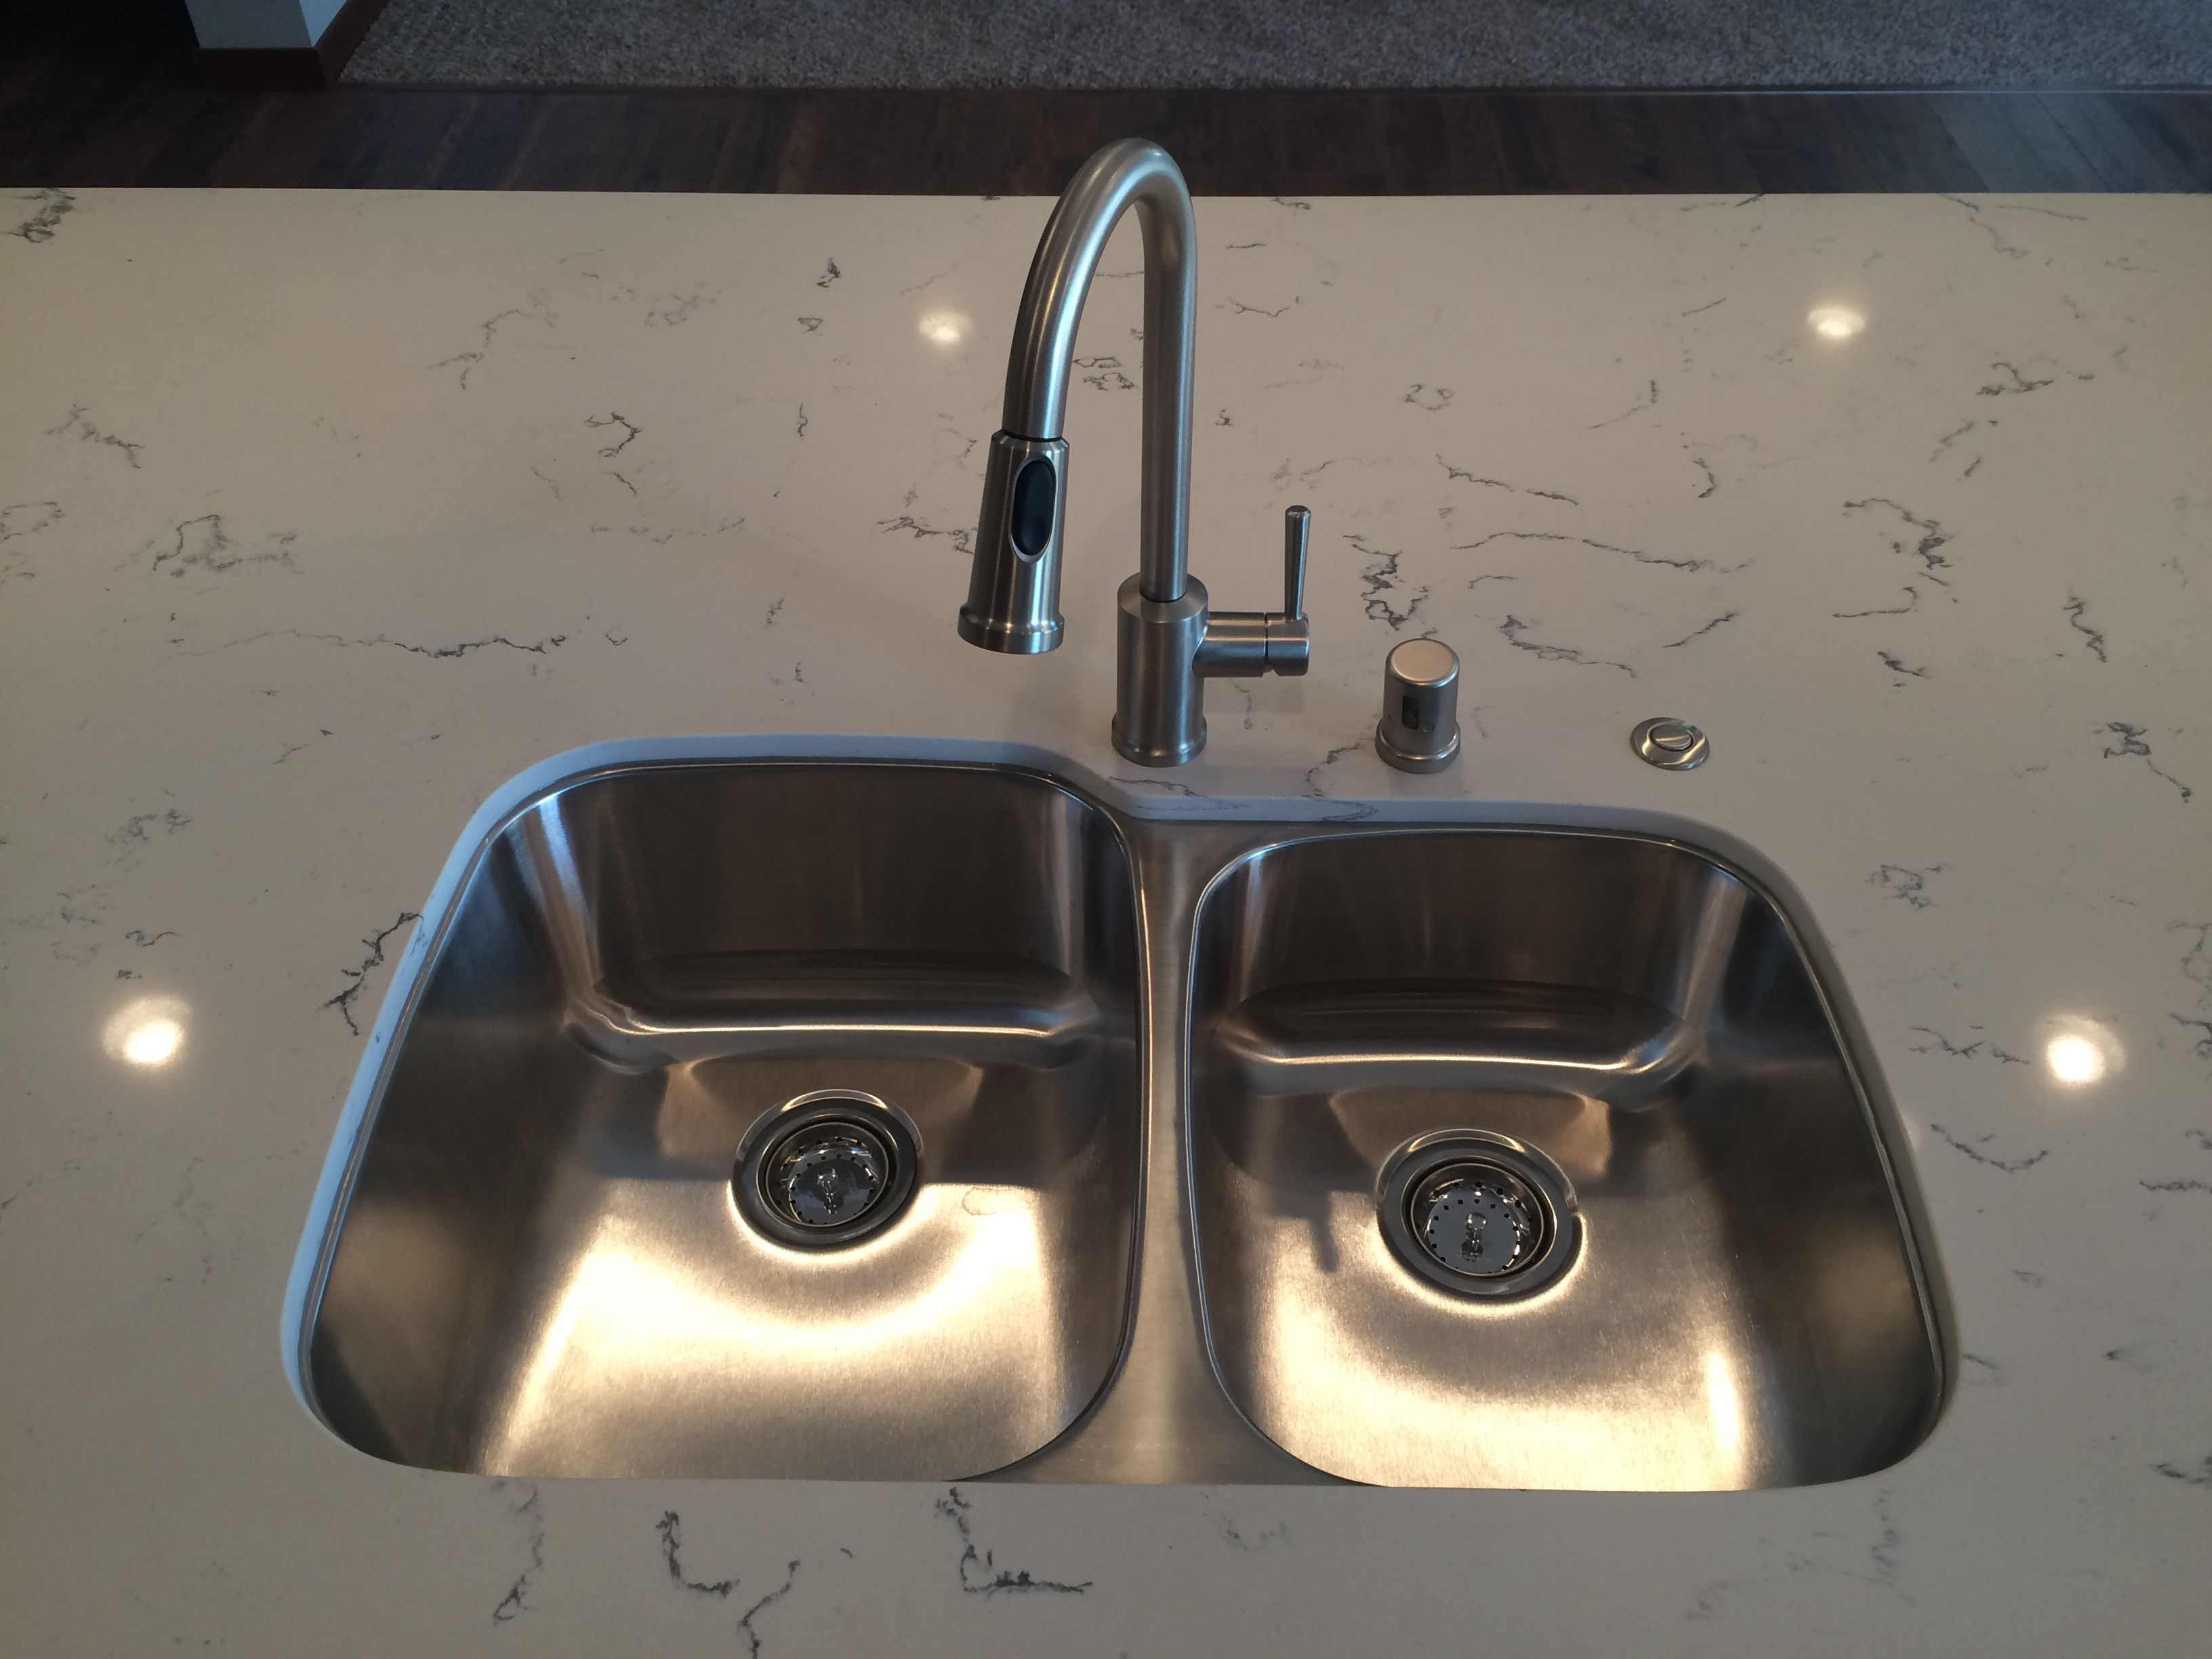 Counter Push On For The Garbage Disposal Islands Or To Keep Switches Out Of Your Backsplash